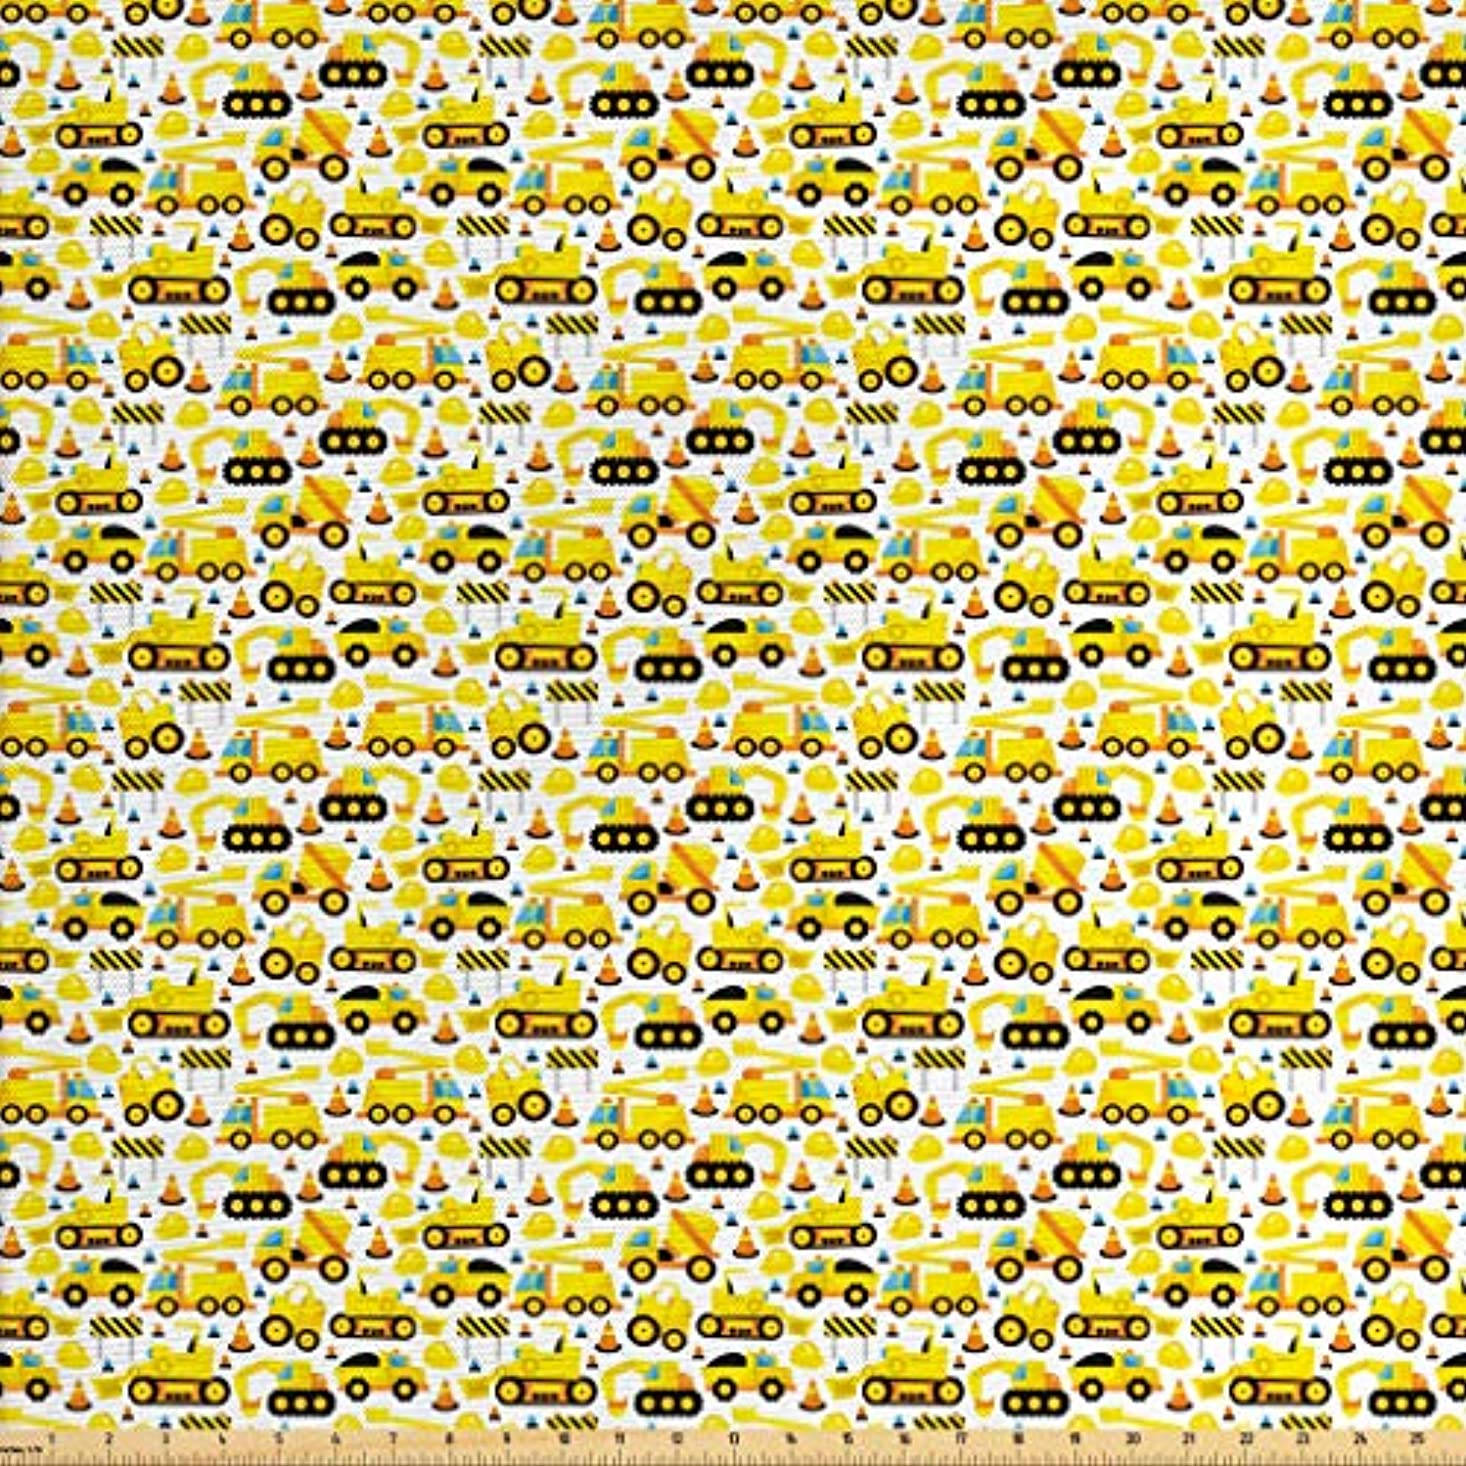 Lunarable Kids Fabric by The Yard, Construction Vehicles Cartoon Style Machines Safety Icons Building Theme, Decorative Fabric for Upholstery and Home Accents, 2 Yards, Yellow Black and White fpzhxdgqxqrank